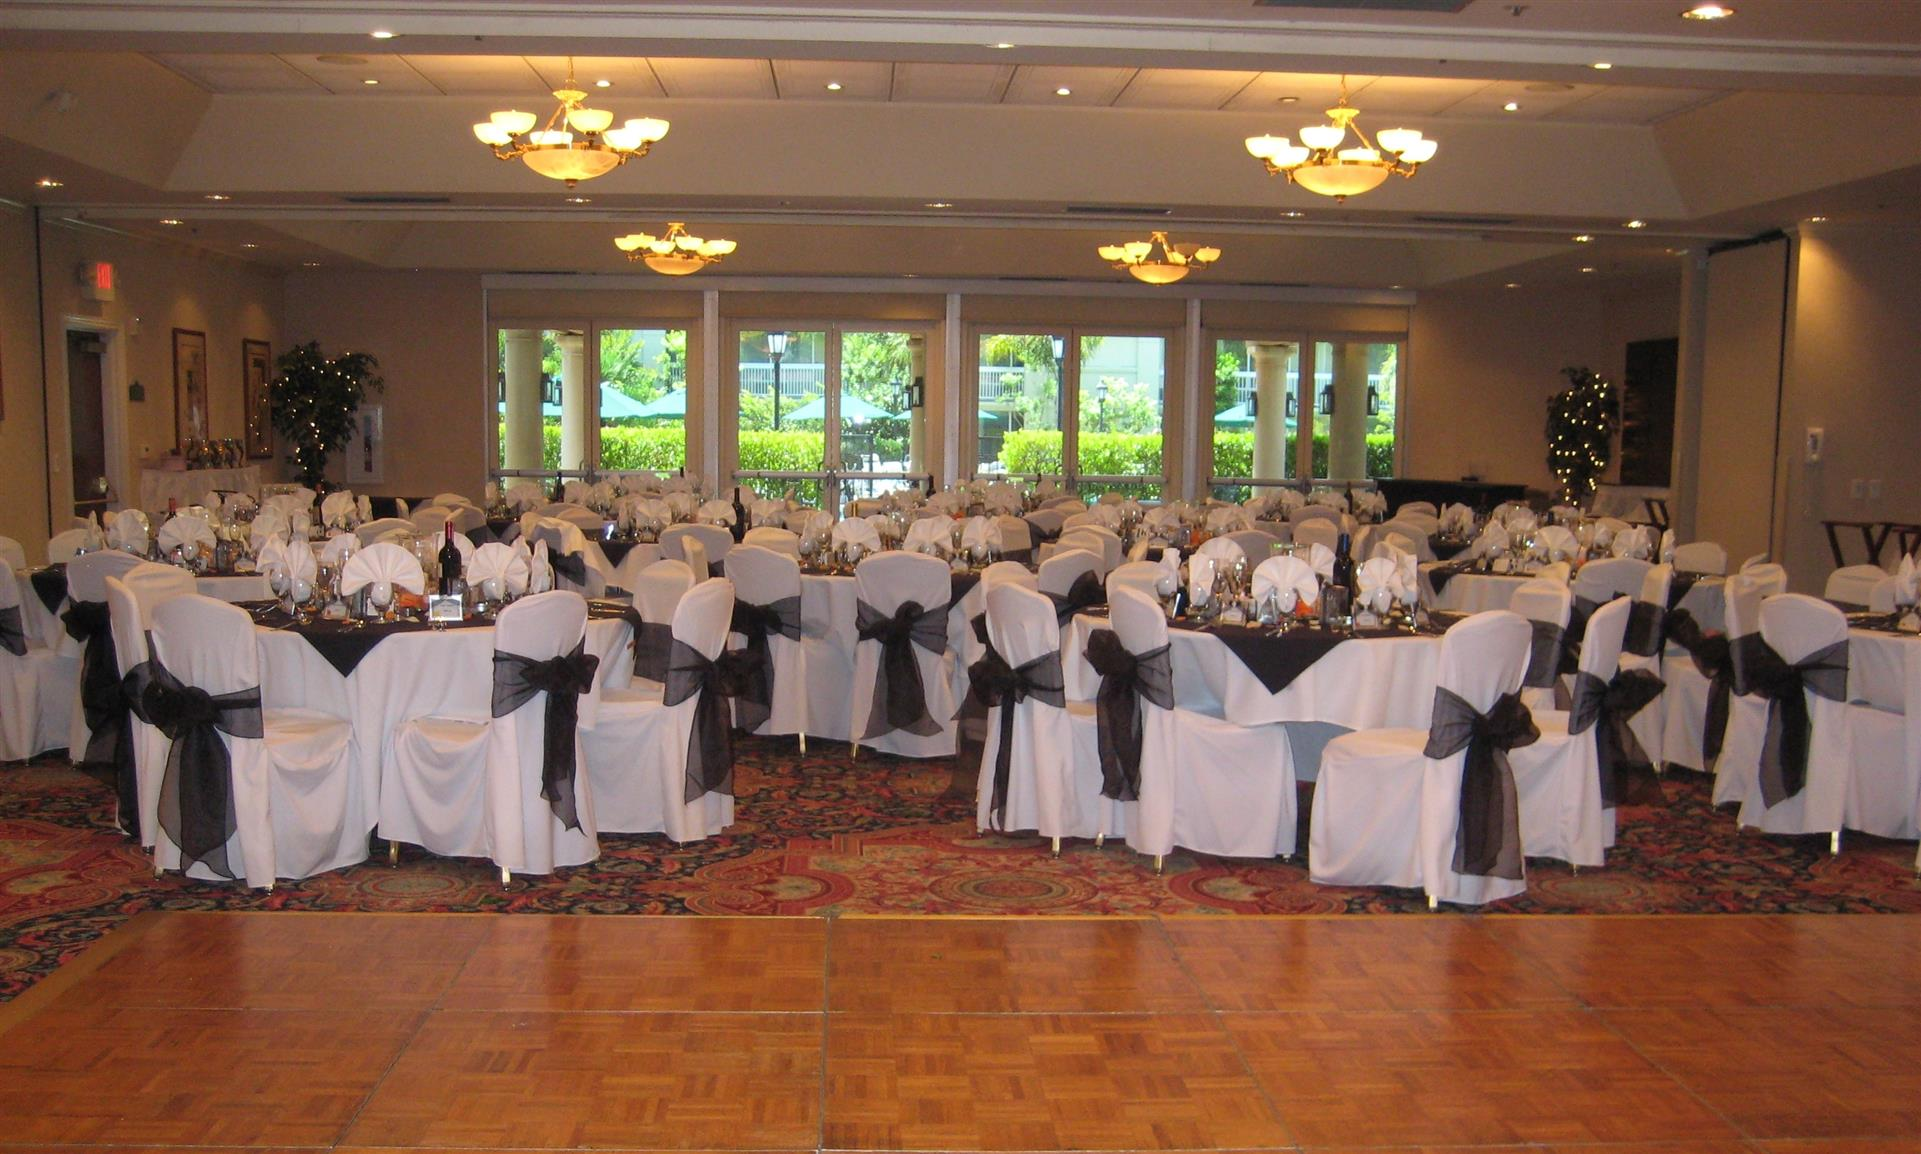 indoor private banquet room set up for a formal event